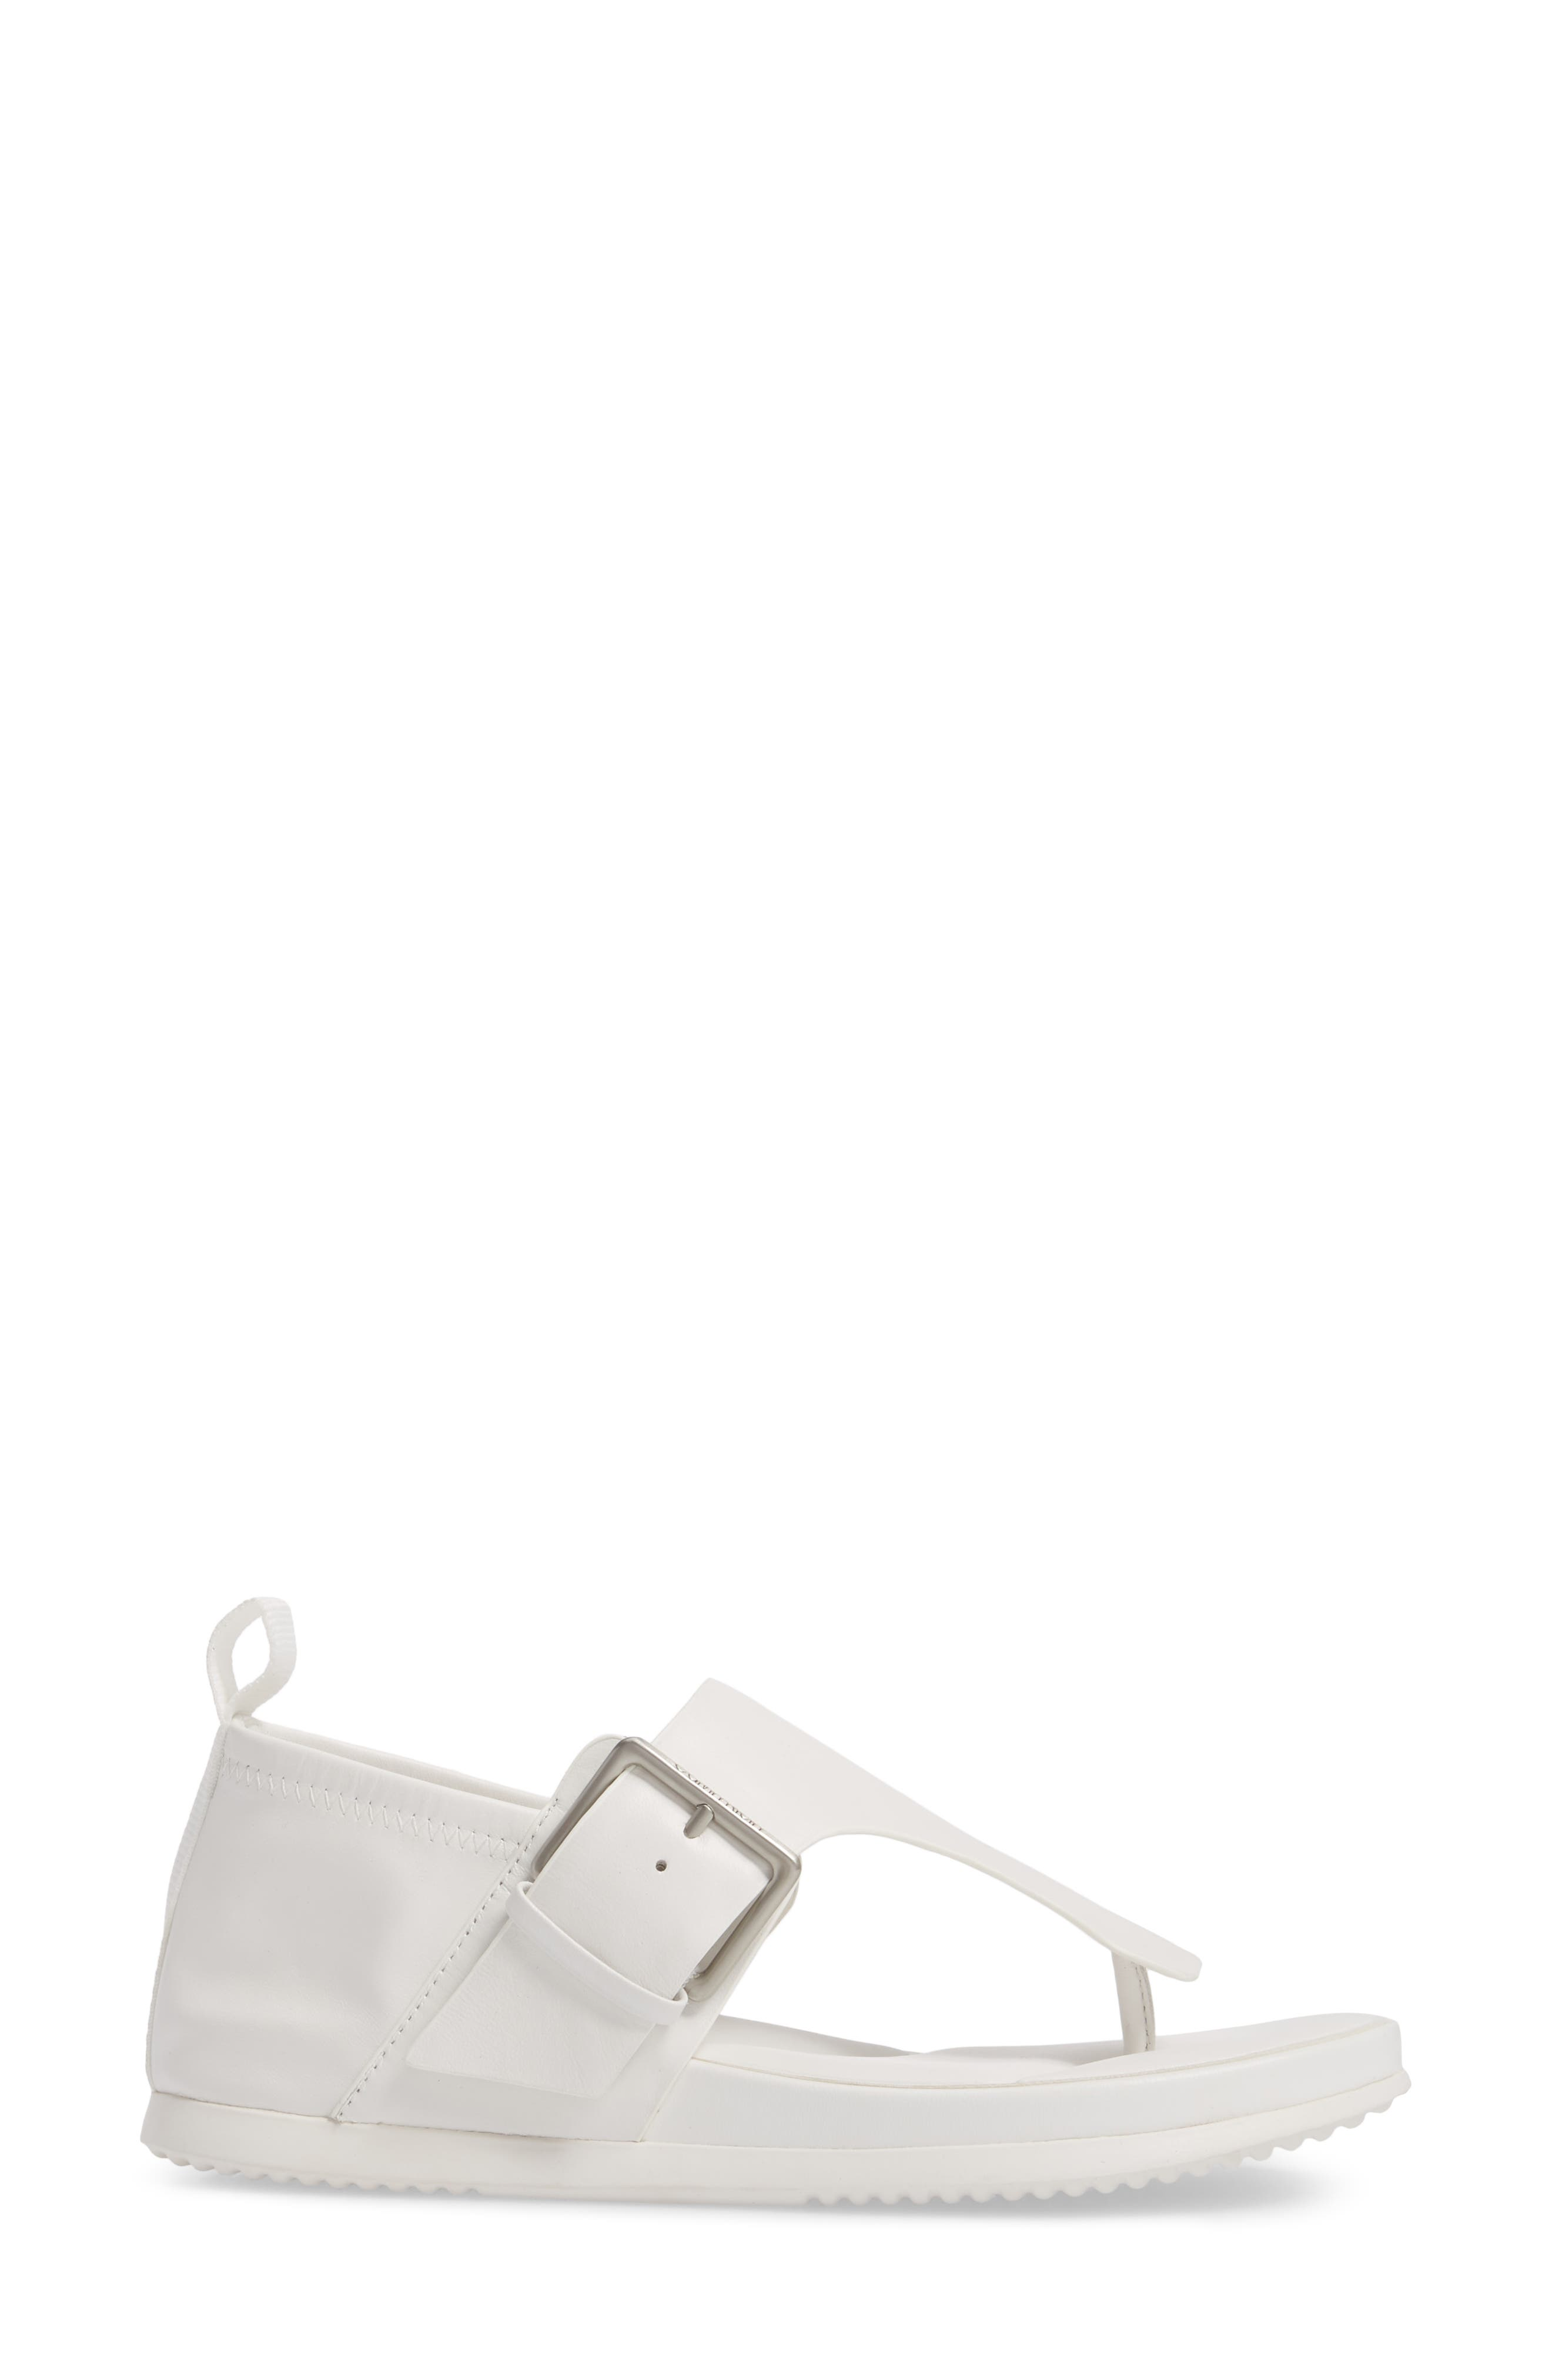 Dionay Wedge Sandal,                             Alternate thumbnail 8, color,